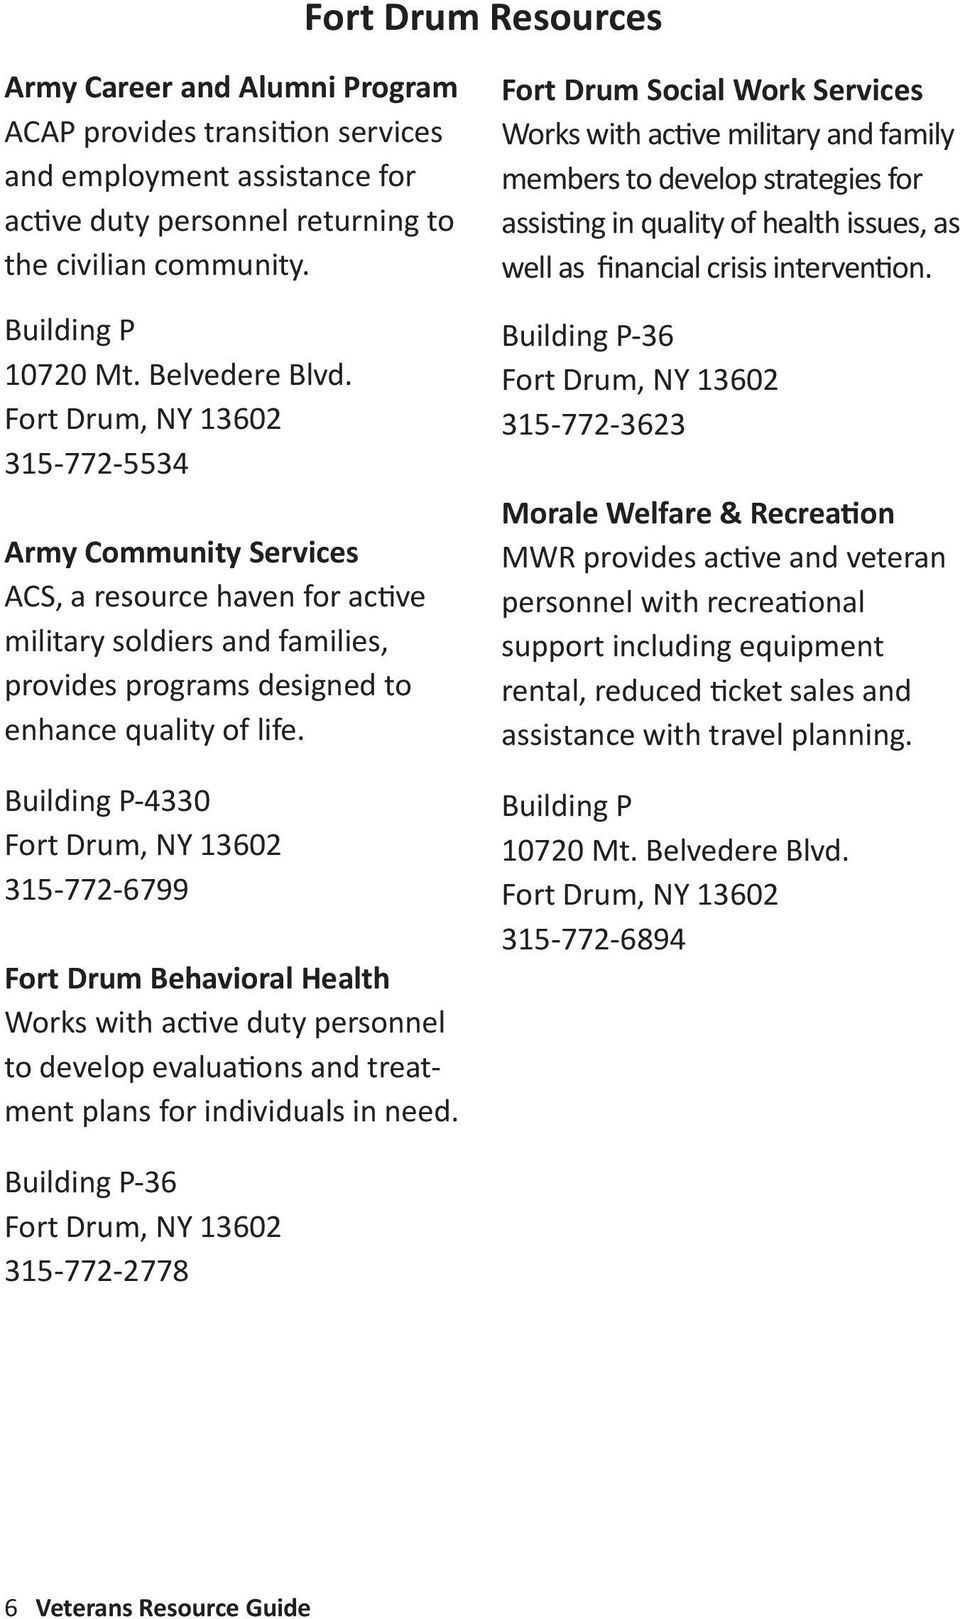 Building P-4330 Fort Drum, NY 13602 315-772-6799 Fort Drum Behavioral Health Works with active duty personnel to develop evaluations and treatment plans for individuals in need.